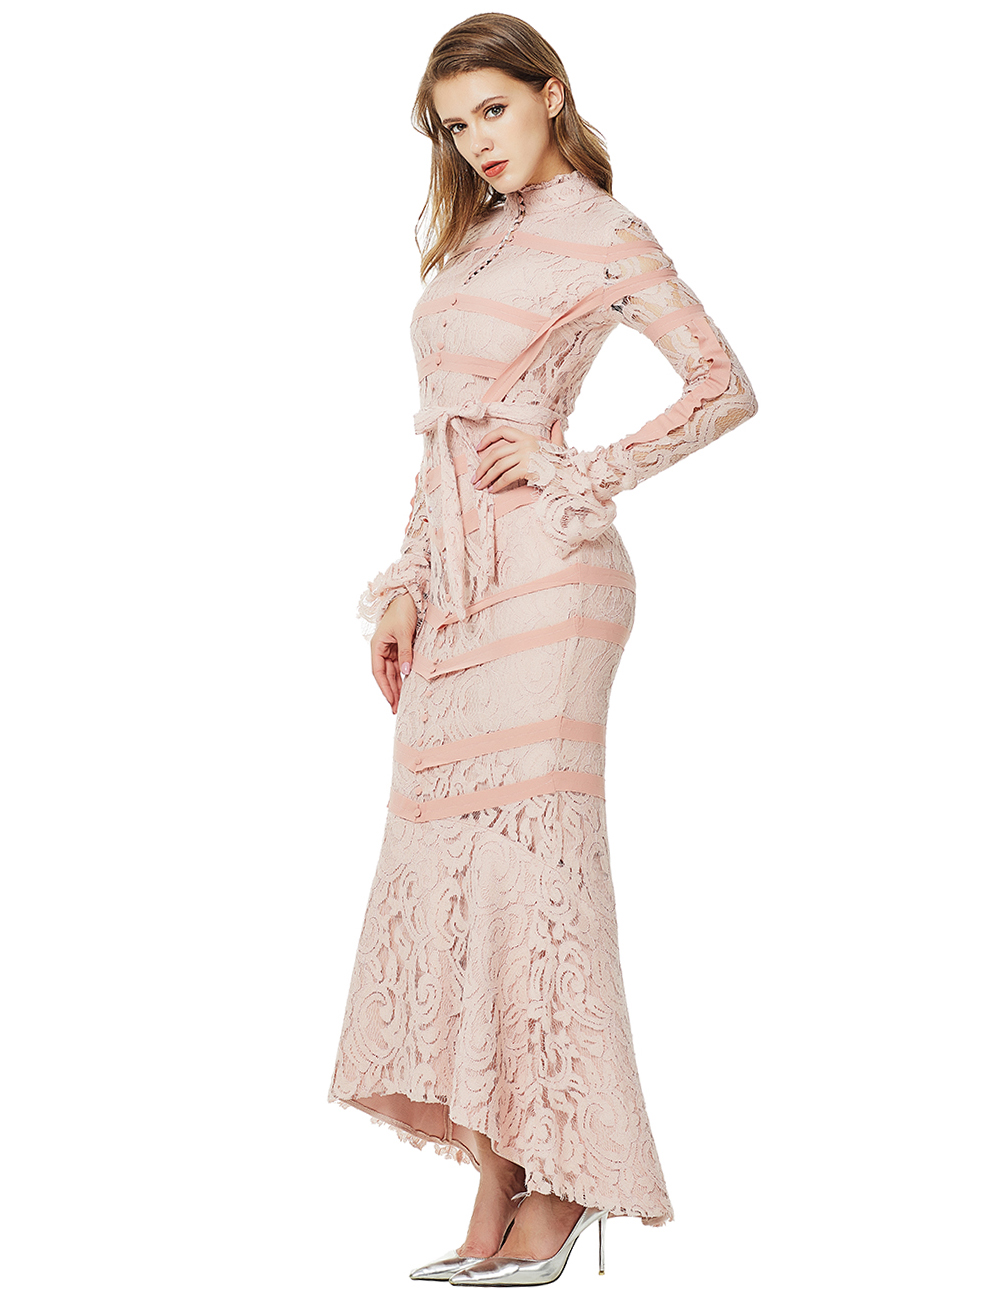 //cdn.affectcloud.com/feelingirldress/upload/imgs/2019-06-10/VZ190588-BE1/VZ190588-BE1-3.jpg